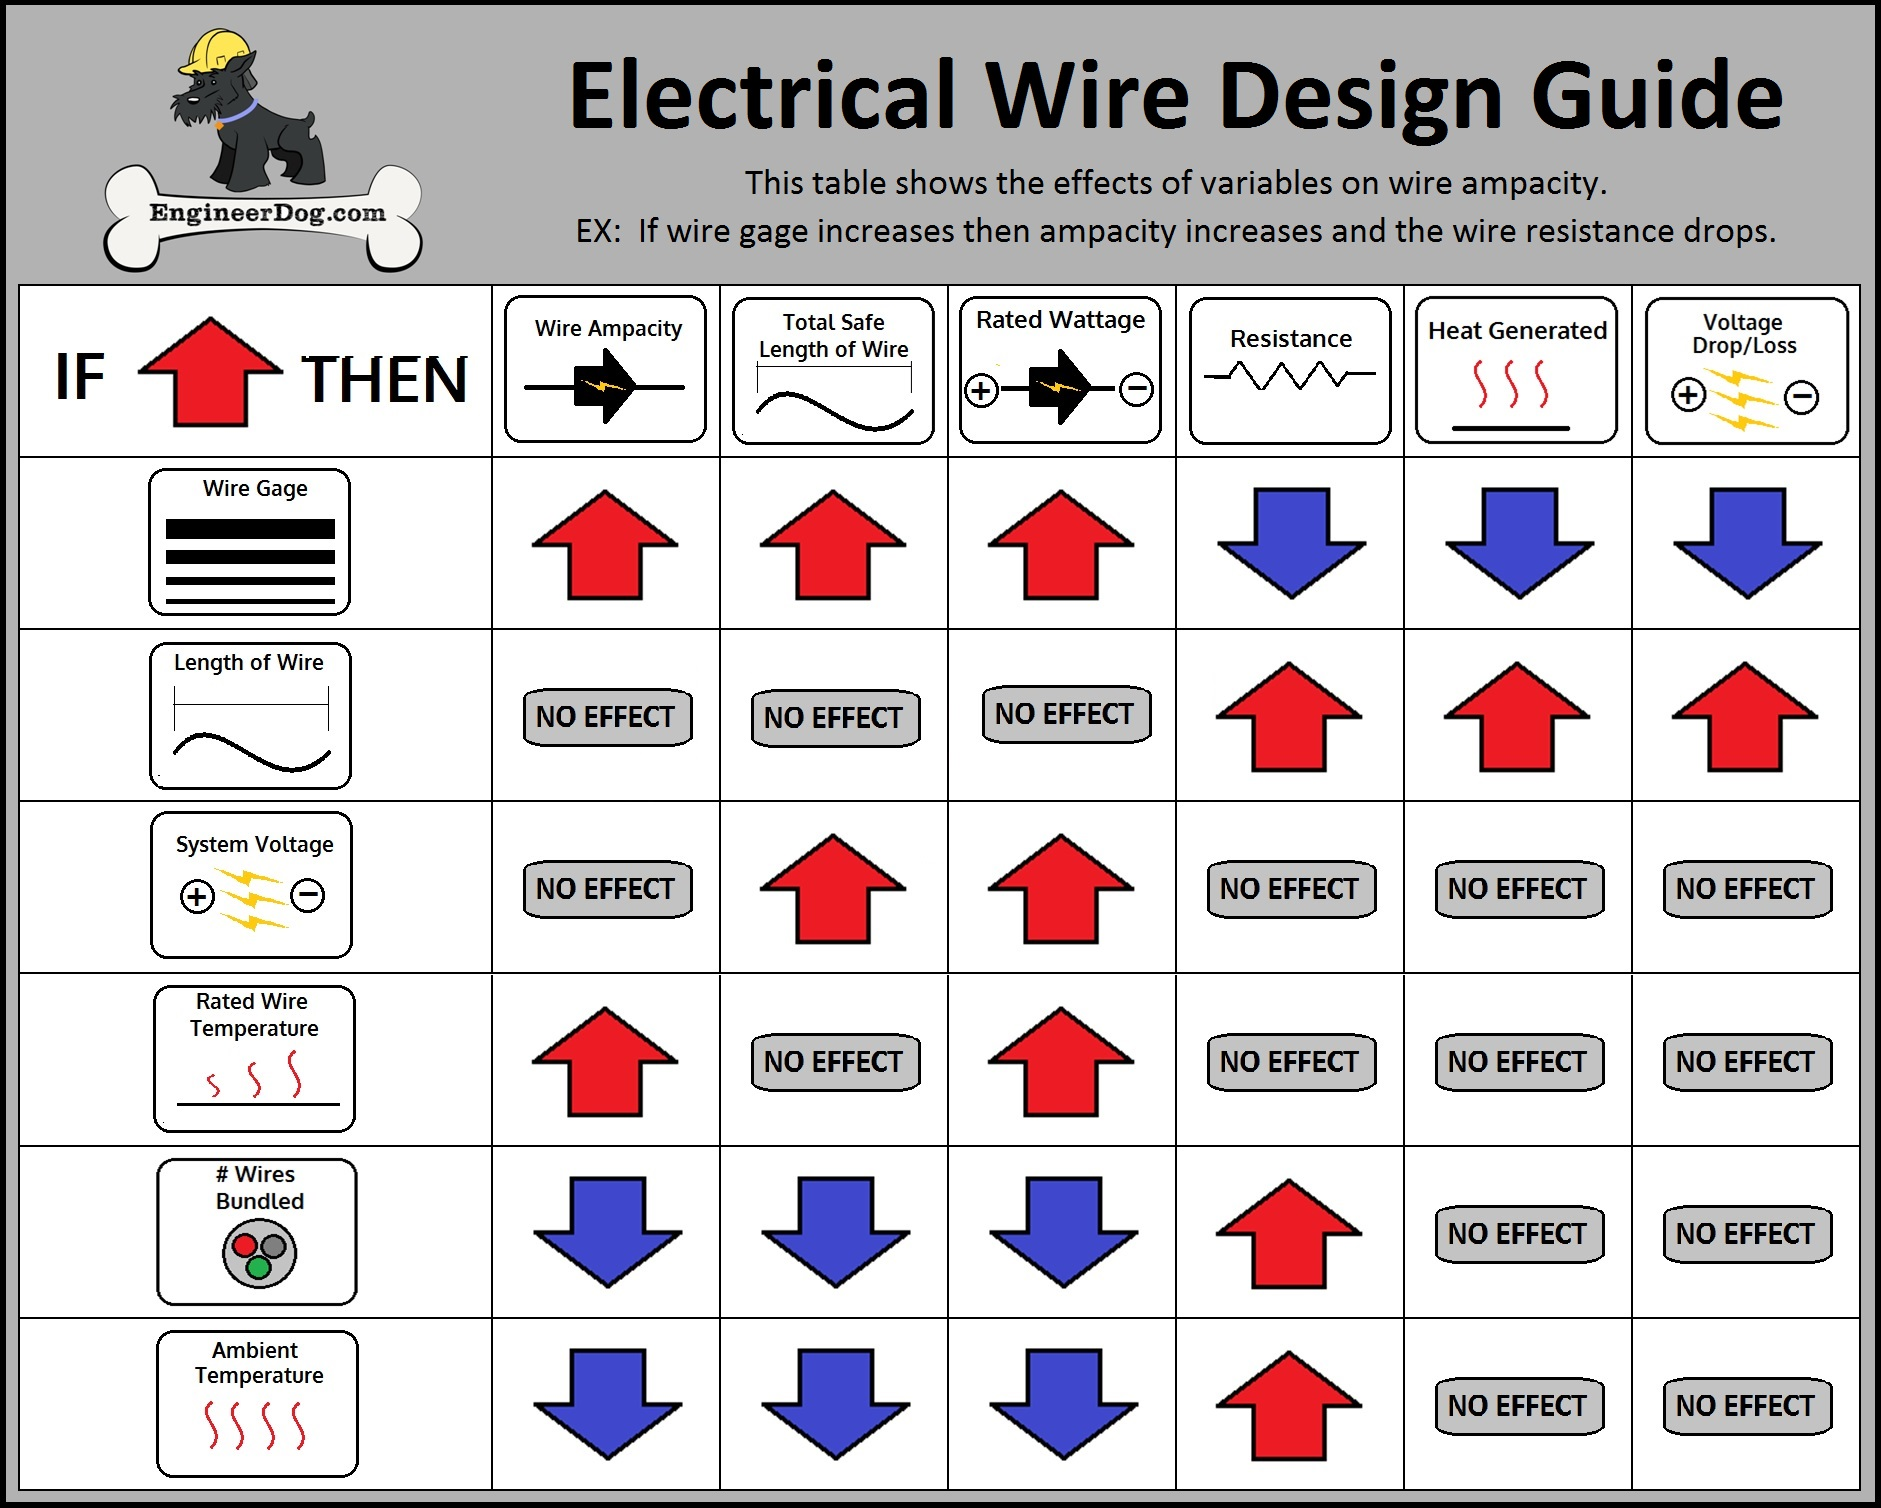 Free electrical wire gauge sizing calculator engineerdog wire sizing guide wire ampacity current carrying capacity greentooth Gallery